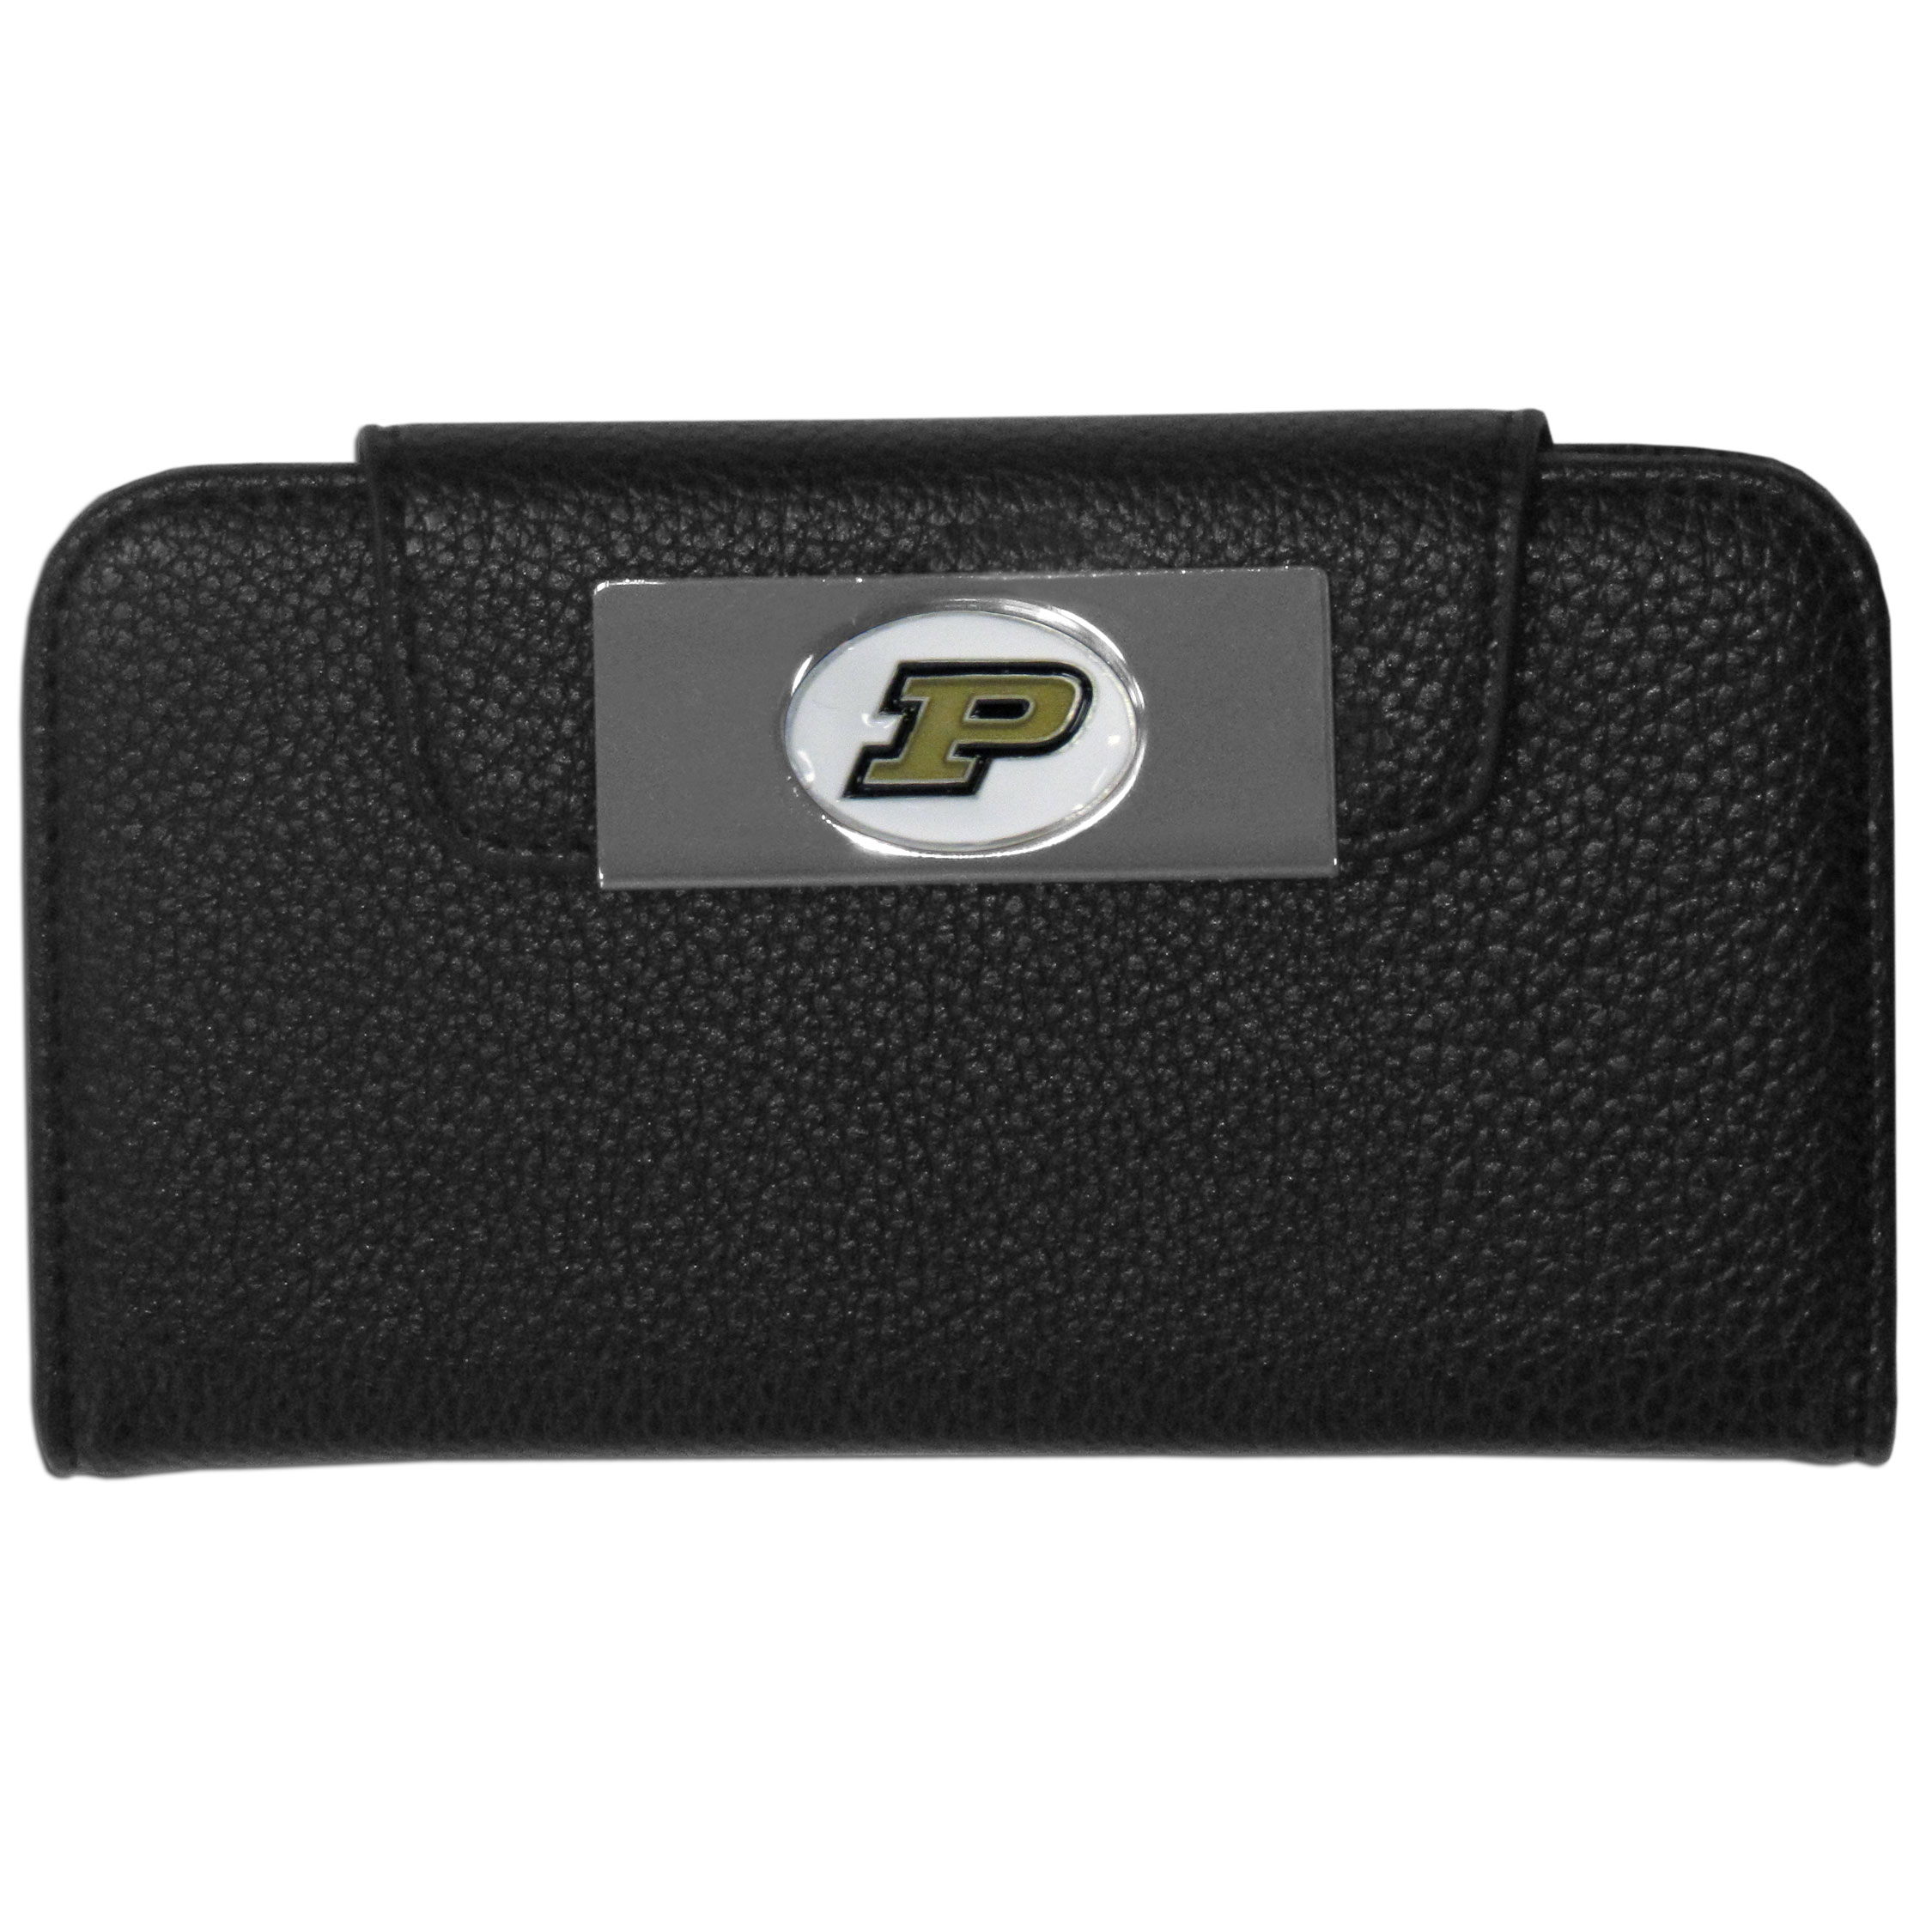 Purdue Boilermakers Samsung Galaxy S4 Wallet Case - This new & wildly popular case is ideal for those who like to travel light! The stylish case has an inner hard shell that securely holds your phone while allowing complete access to the phone's functionality. The flip cover has slots for credit cards, business cards and identification. The magnetic flip cover has a metal Purdue Boilermakers emblem on a high polish chrome backing. Fits the Samsung Galaxy S4